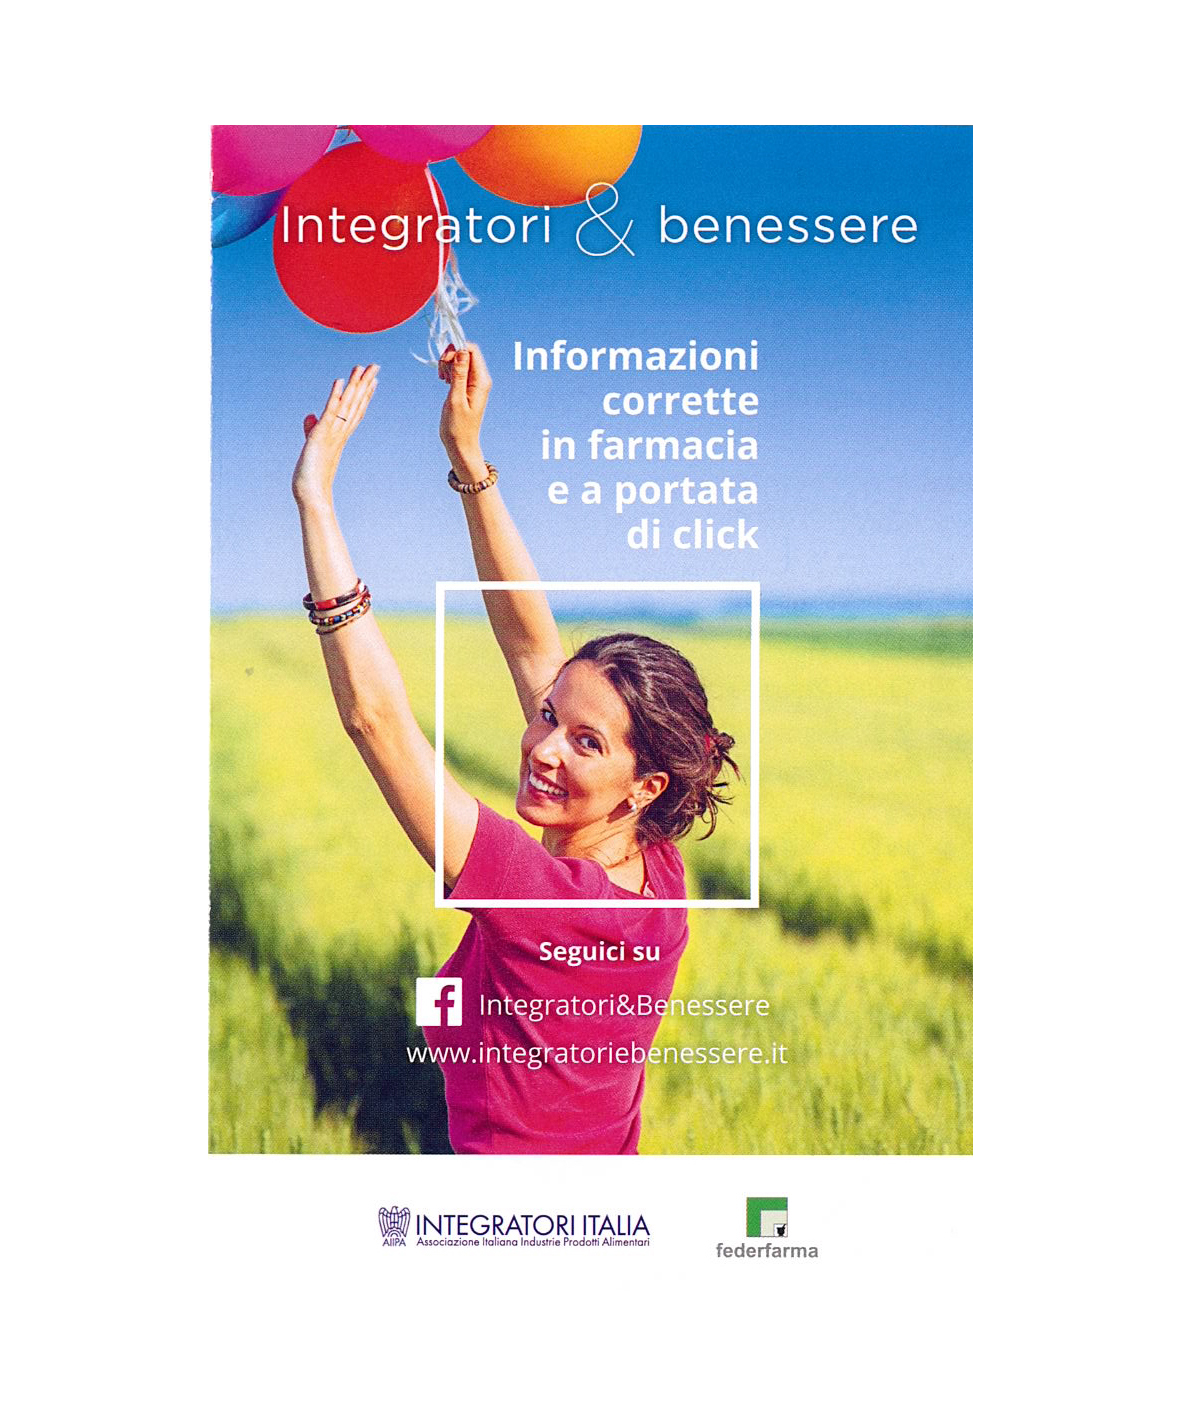 integratori in farmacia - folder